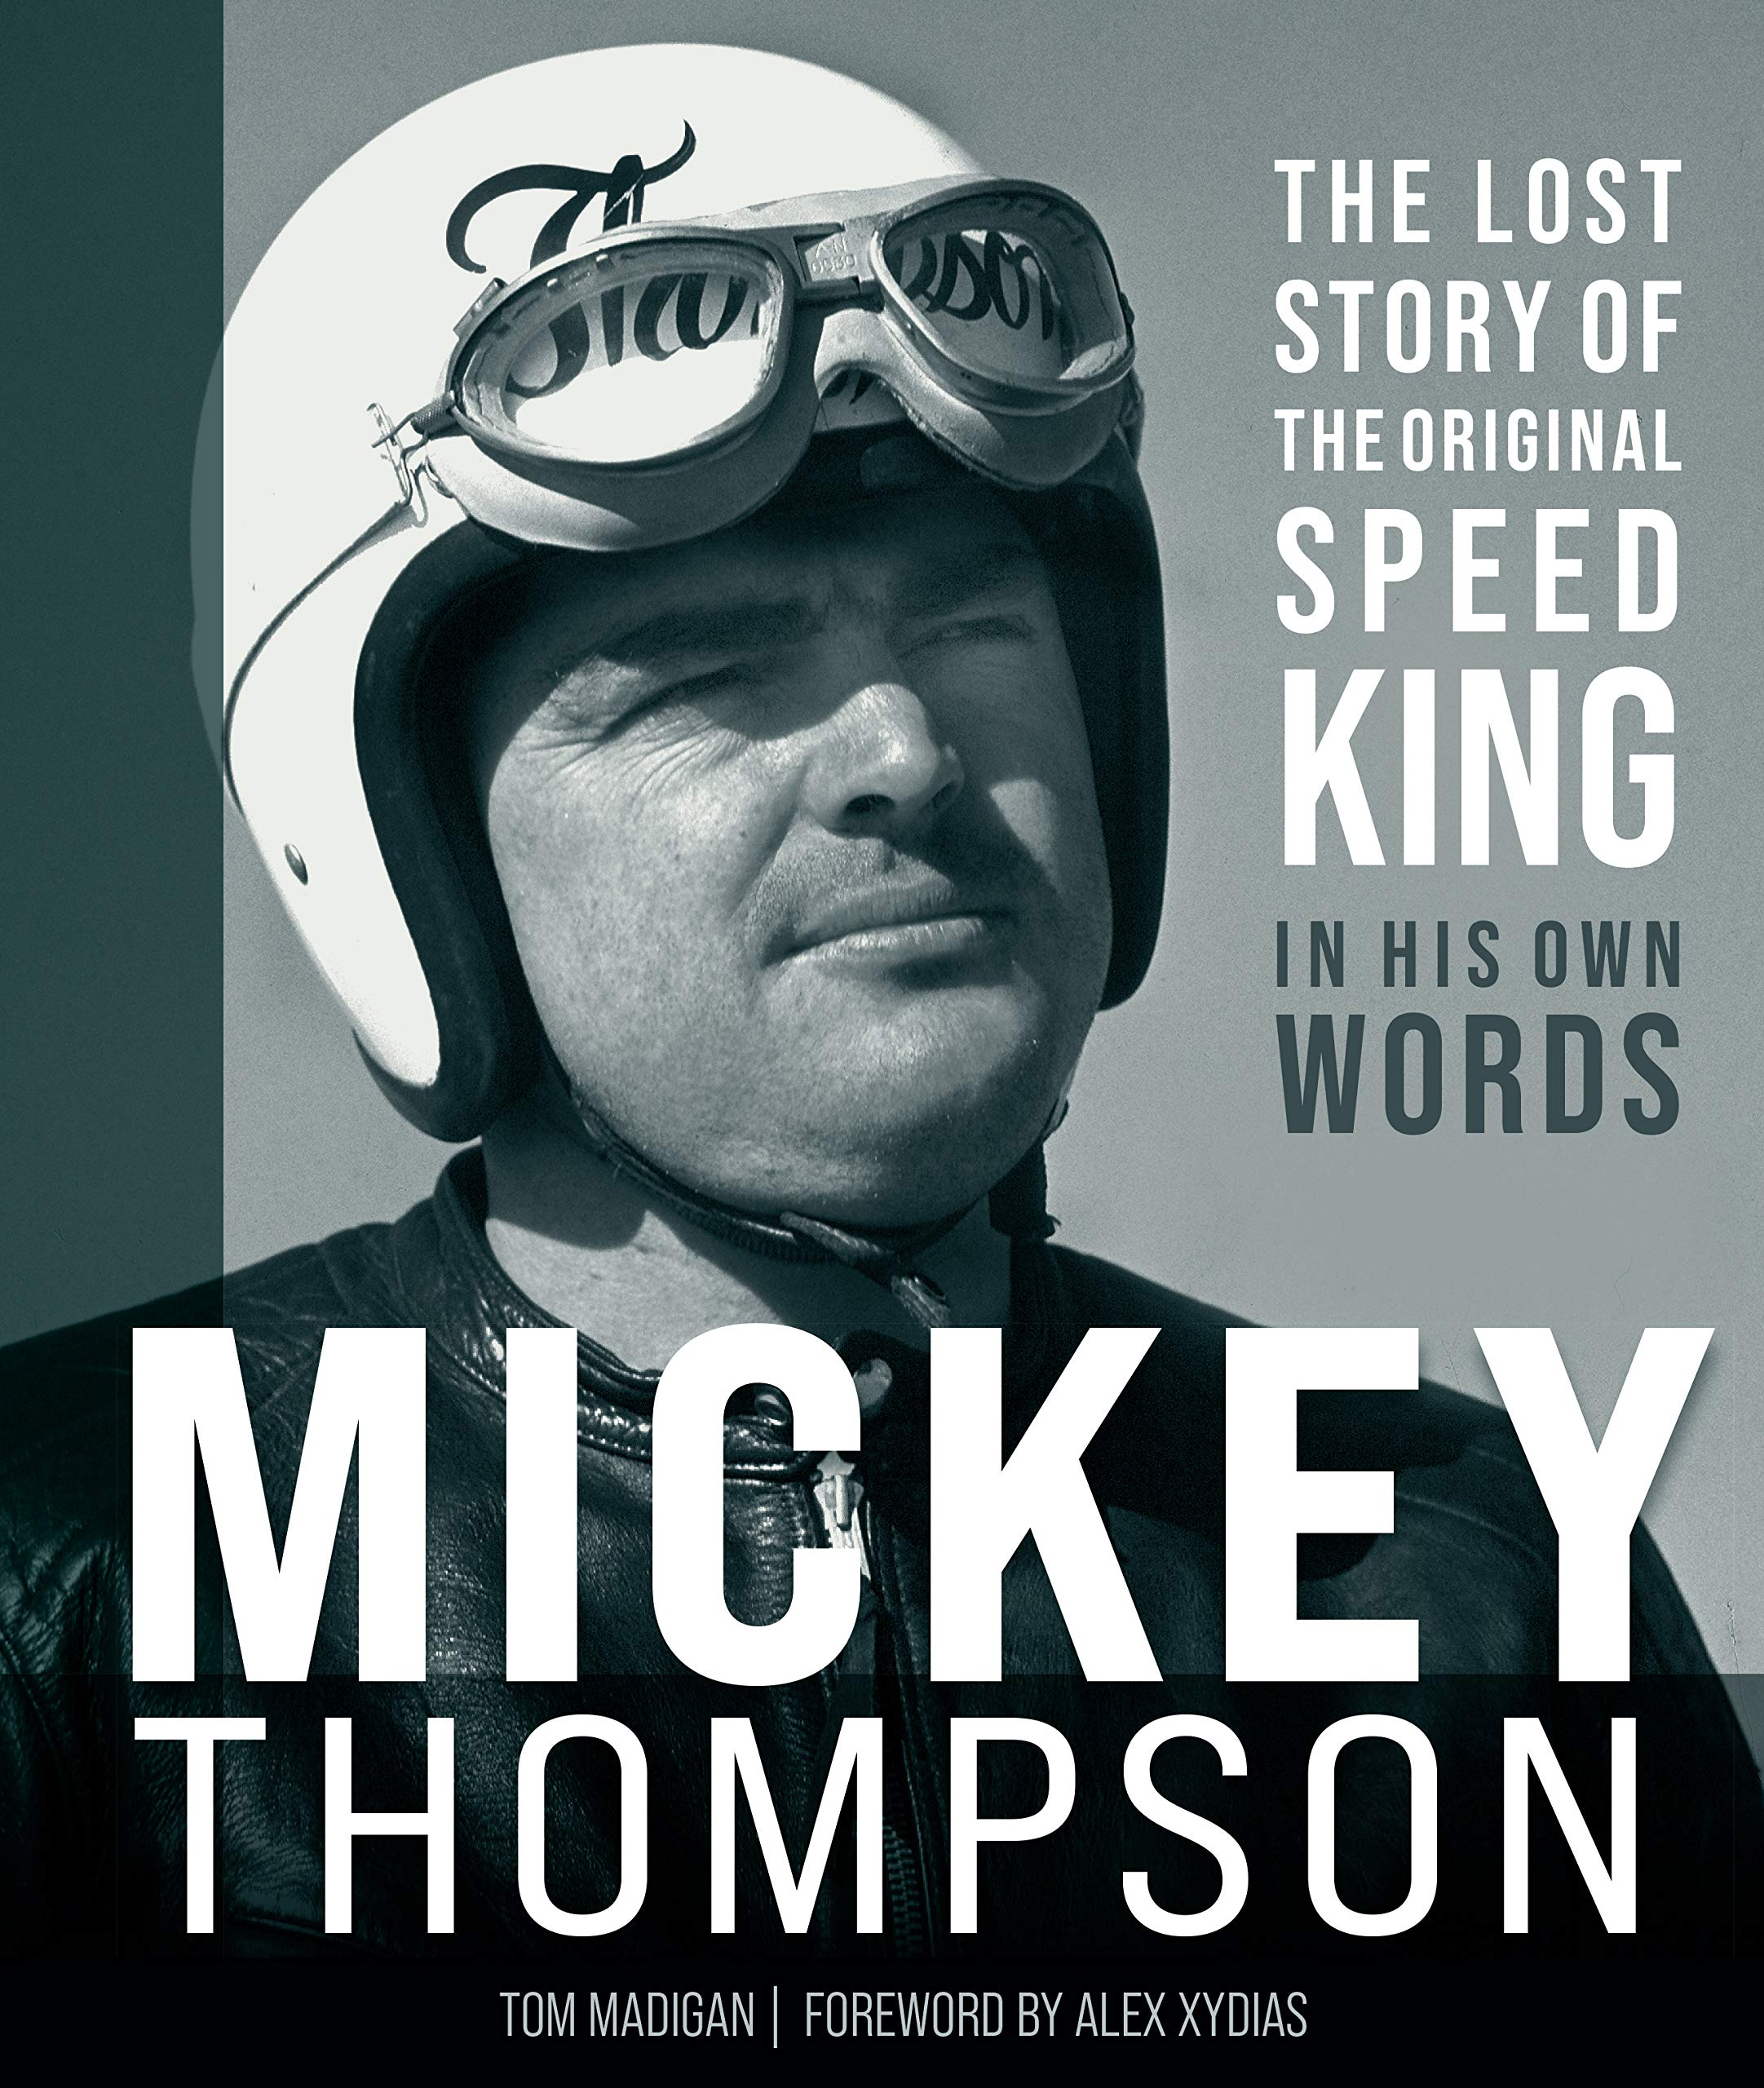 Mickey Thompson: The Lost Story of the Original Speed King in His Own Words by Motorbooks